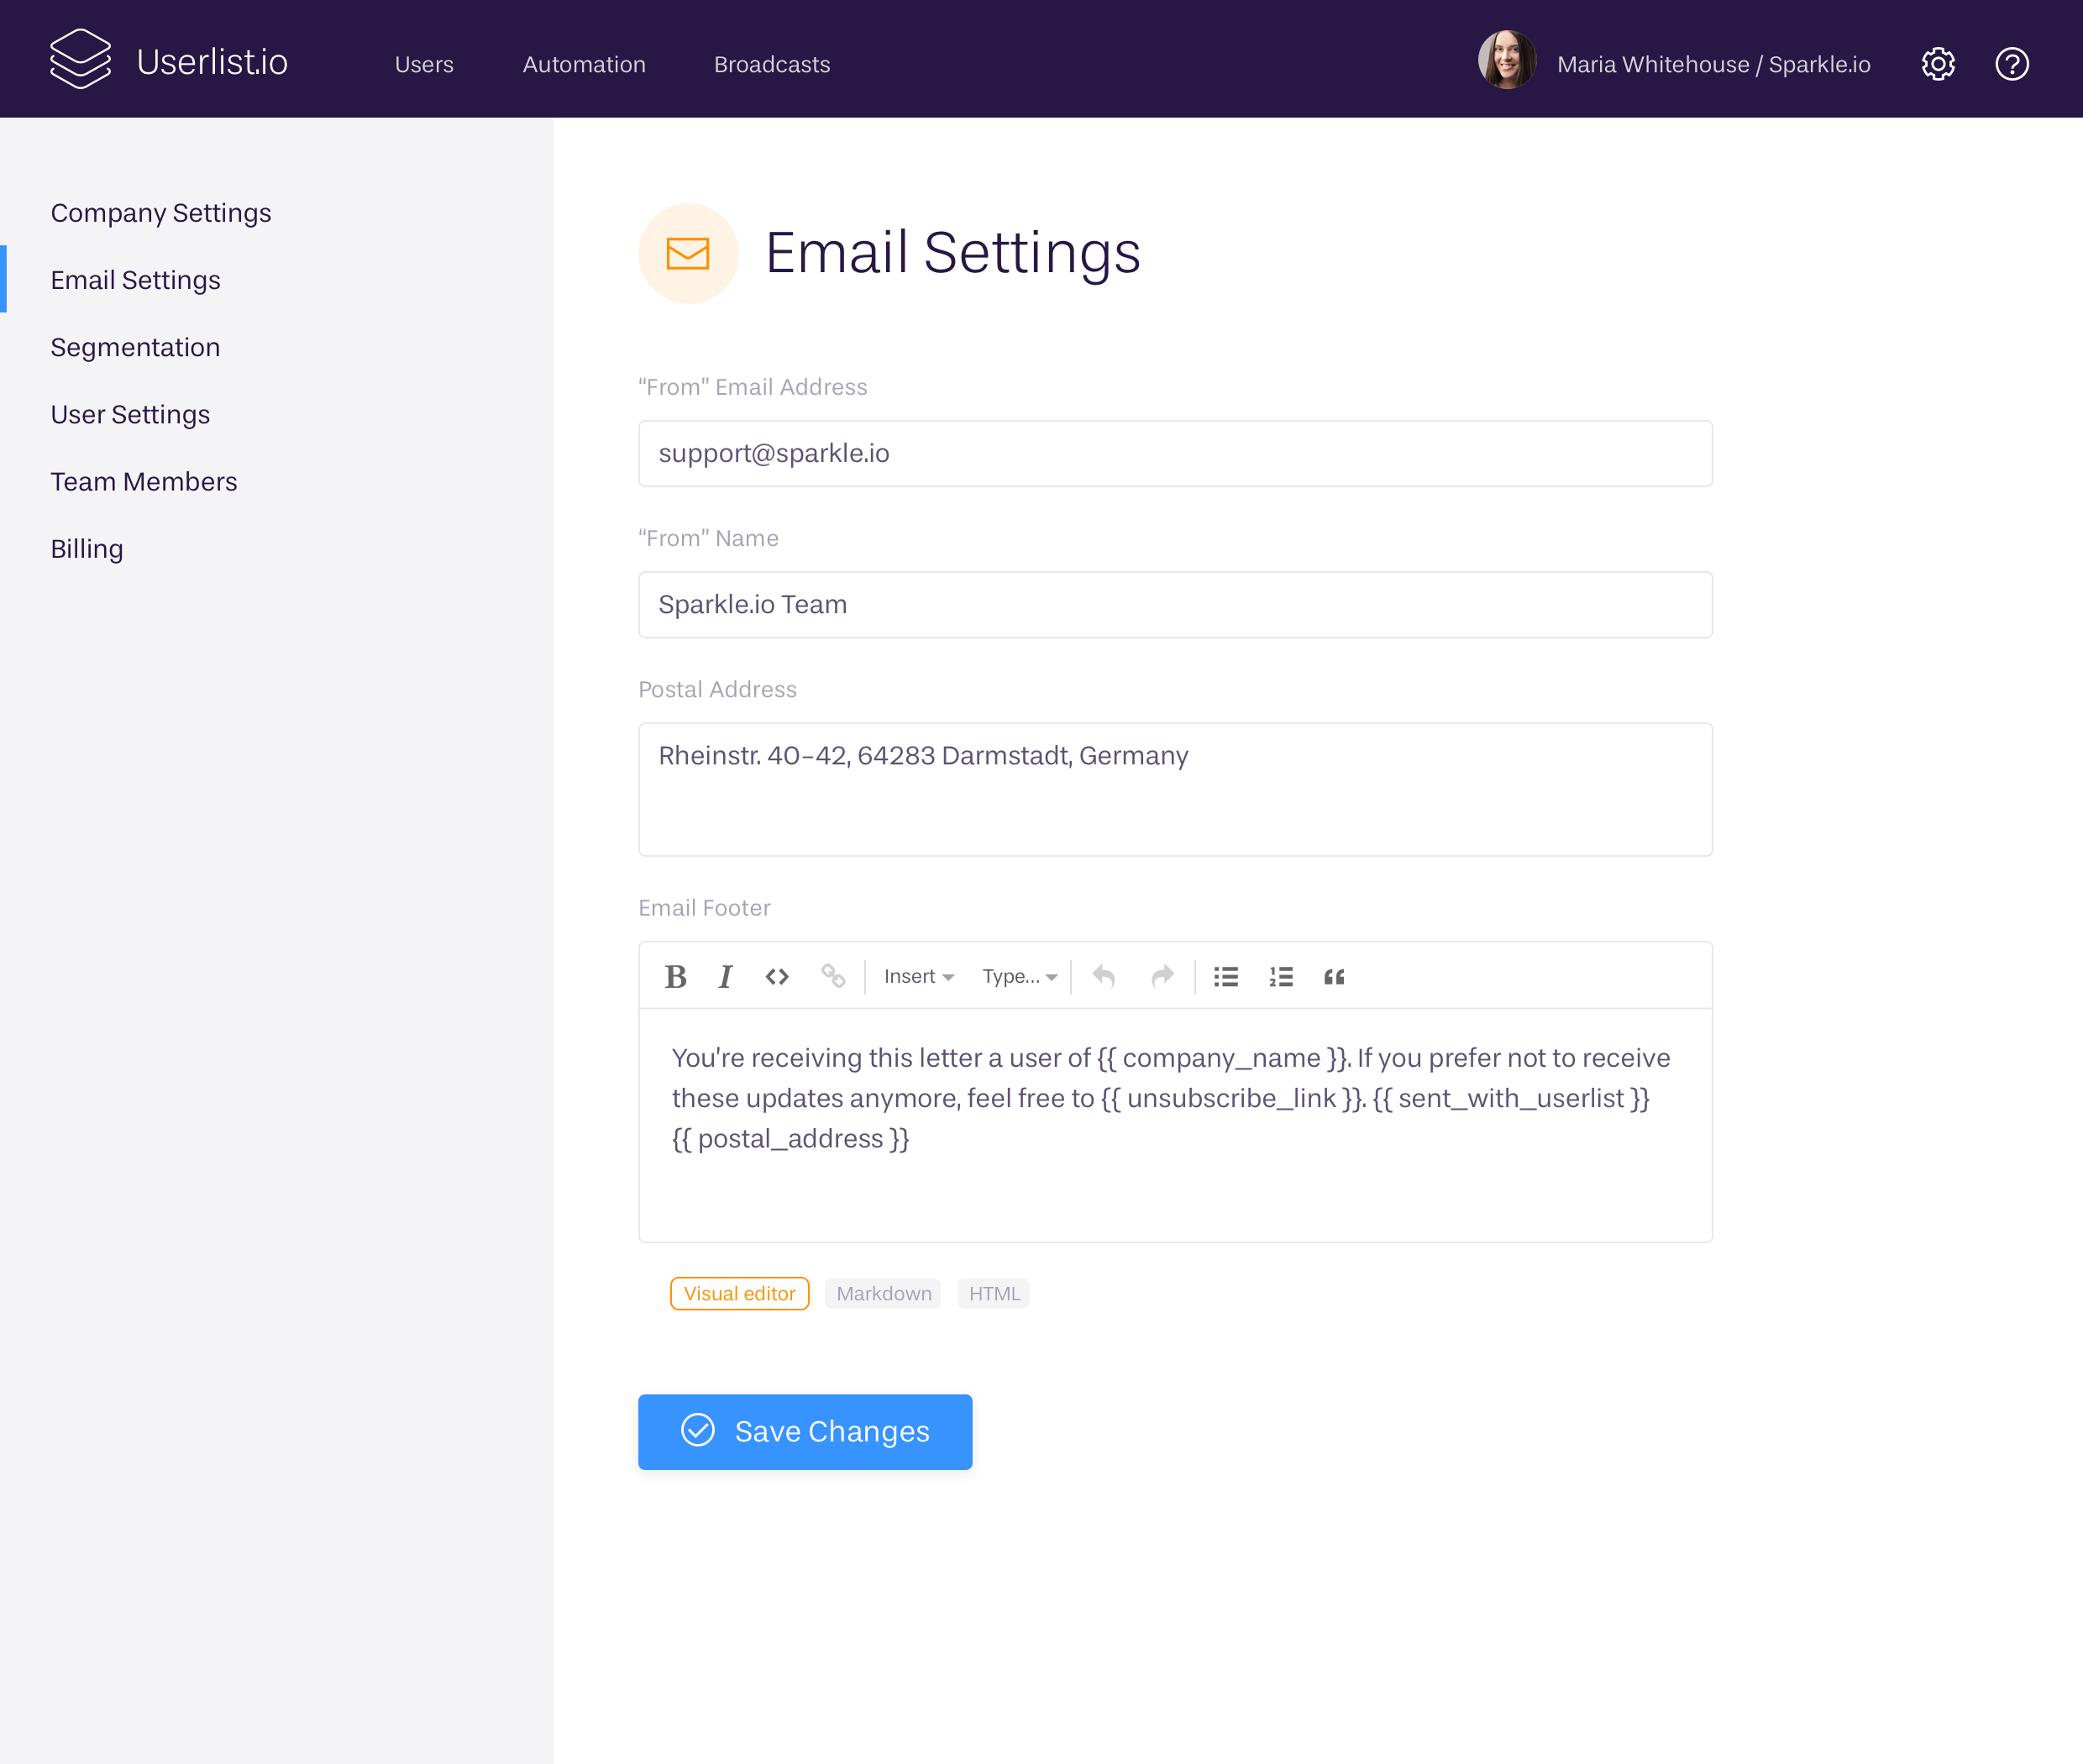 Email settings at Userlist